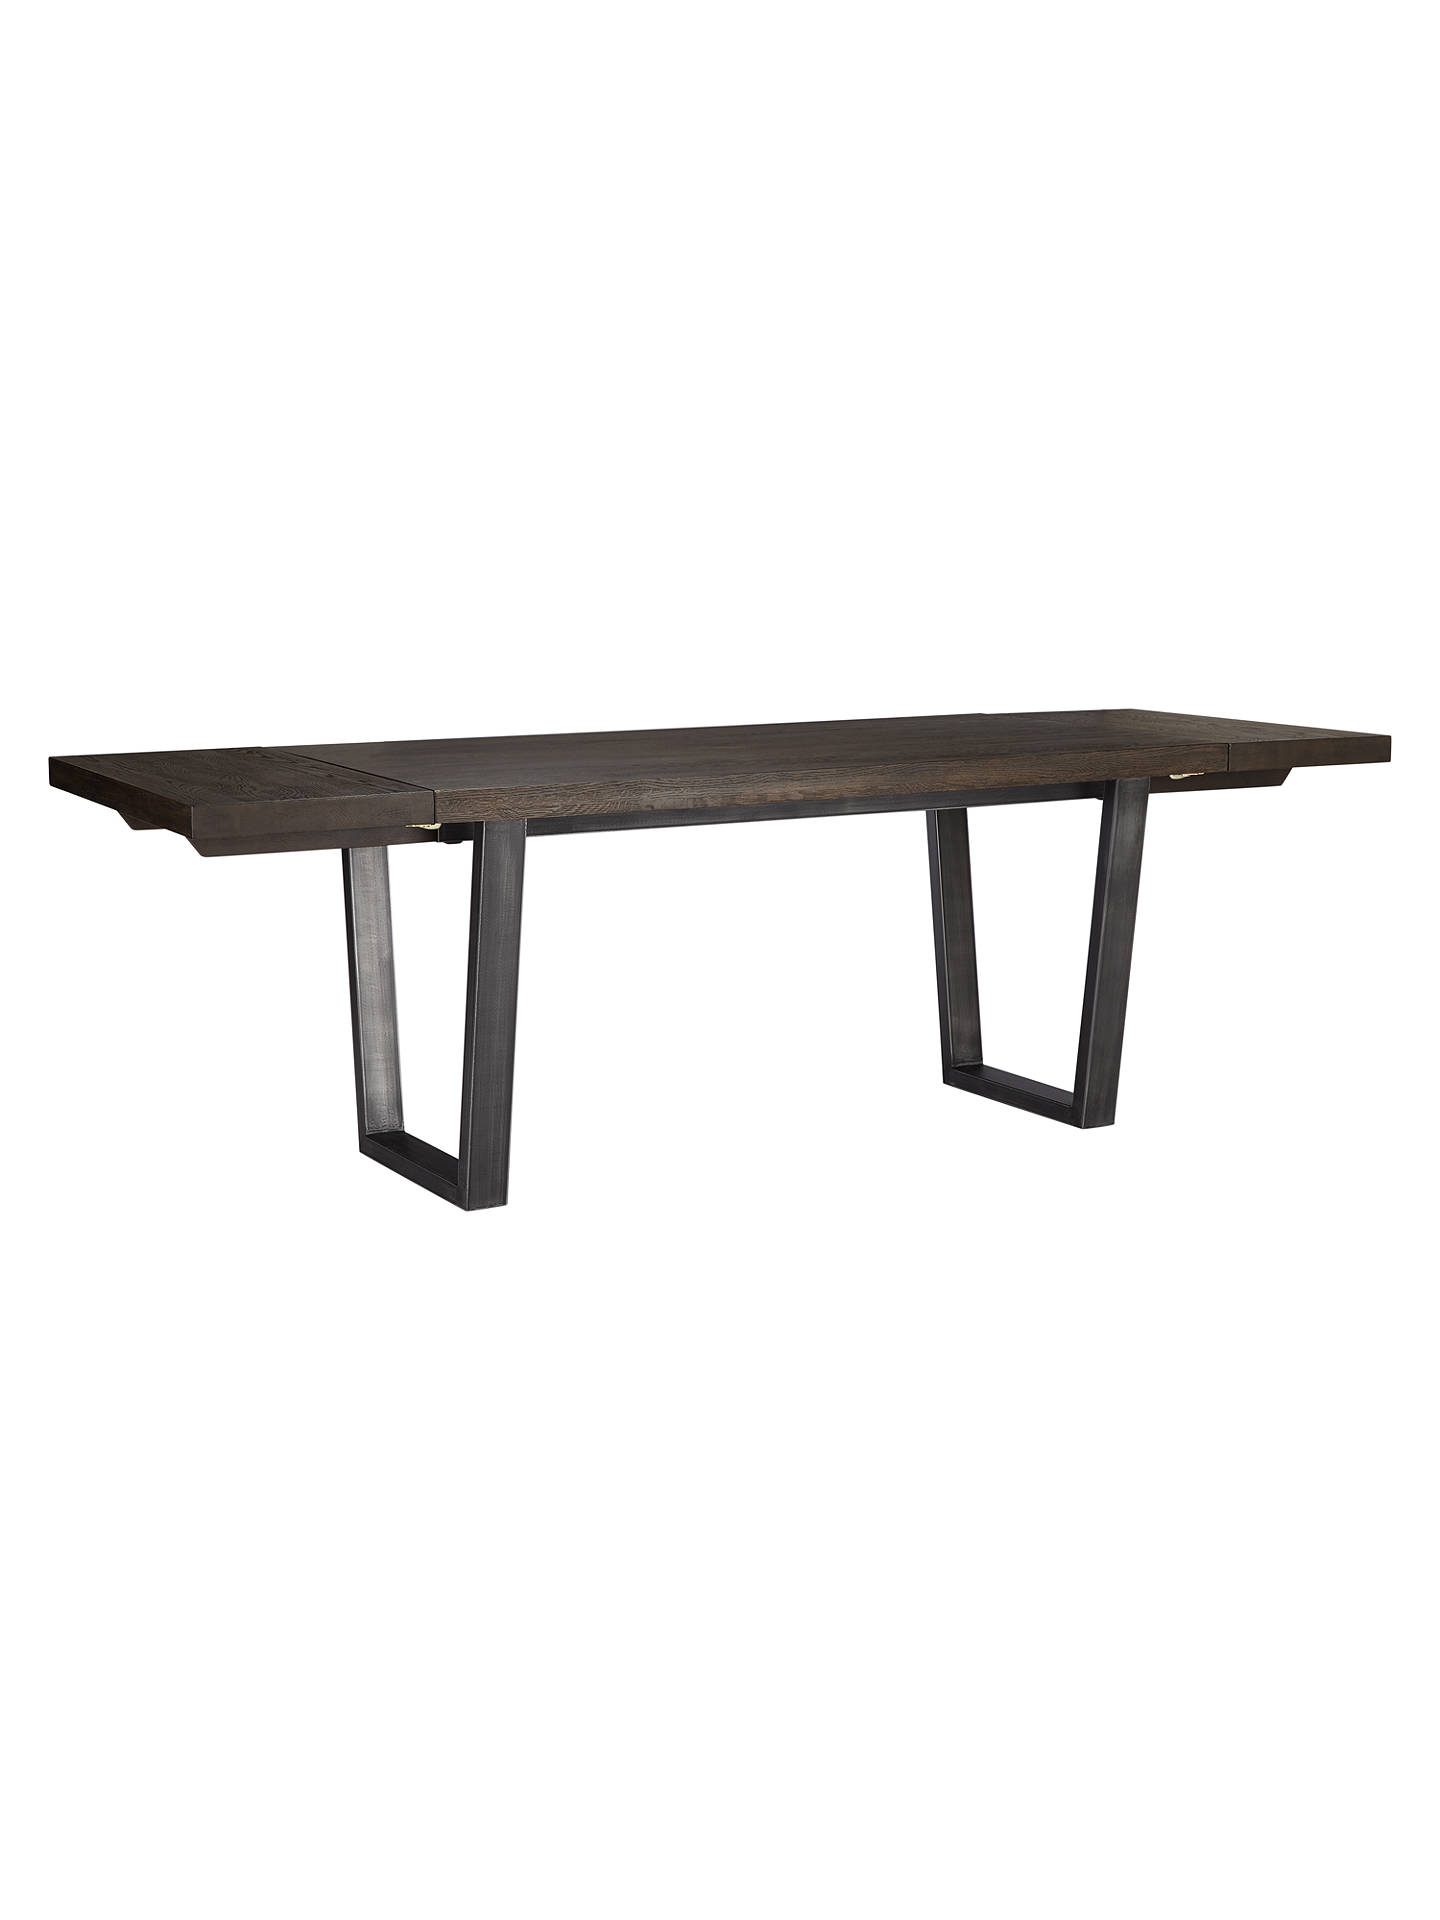 BuyJohn Lewis & Partners Calia 6-10 Seater Extending Dining Table, Dark Online at johnlewis.com